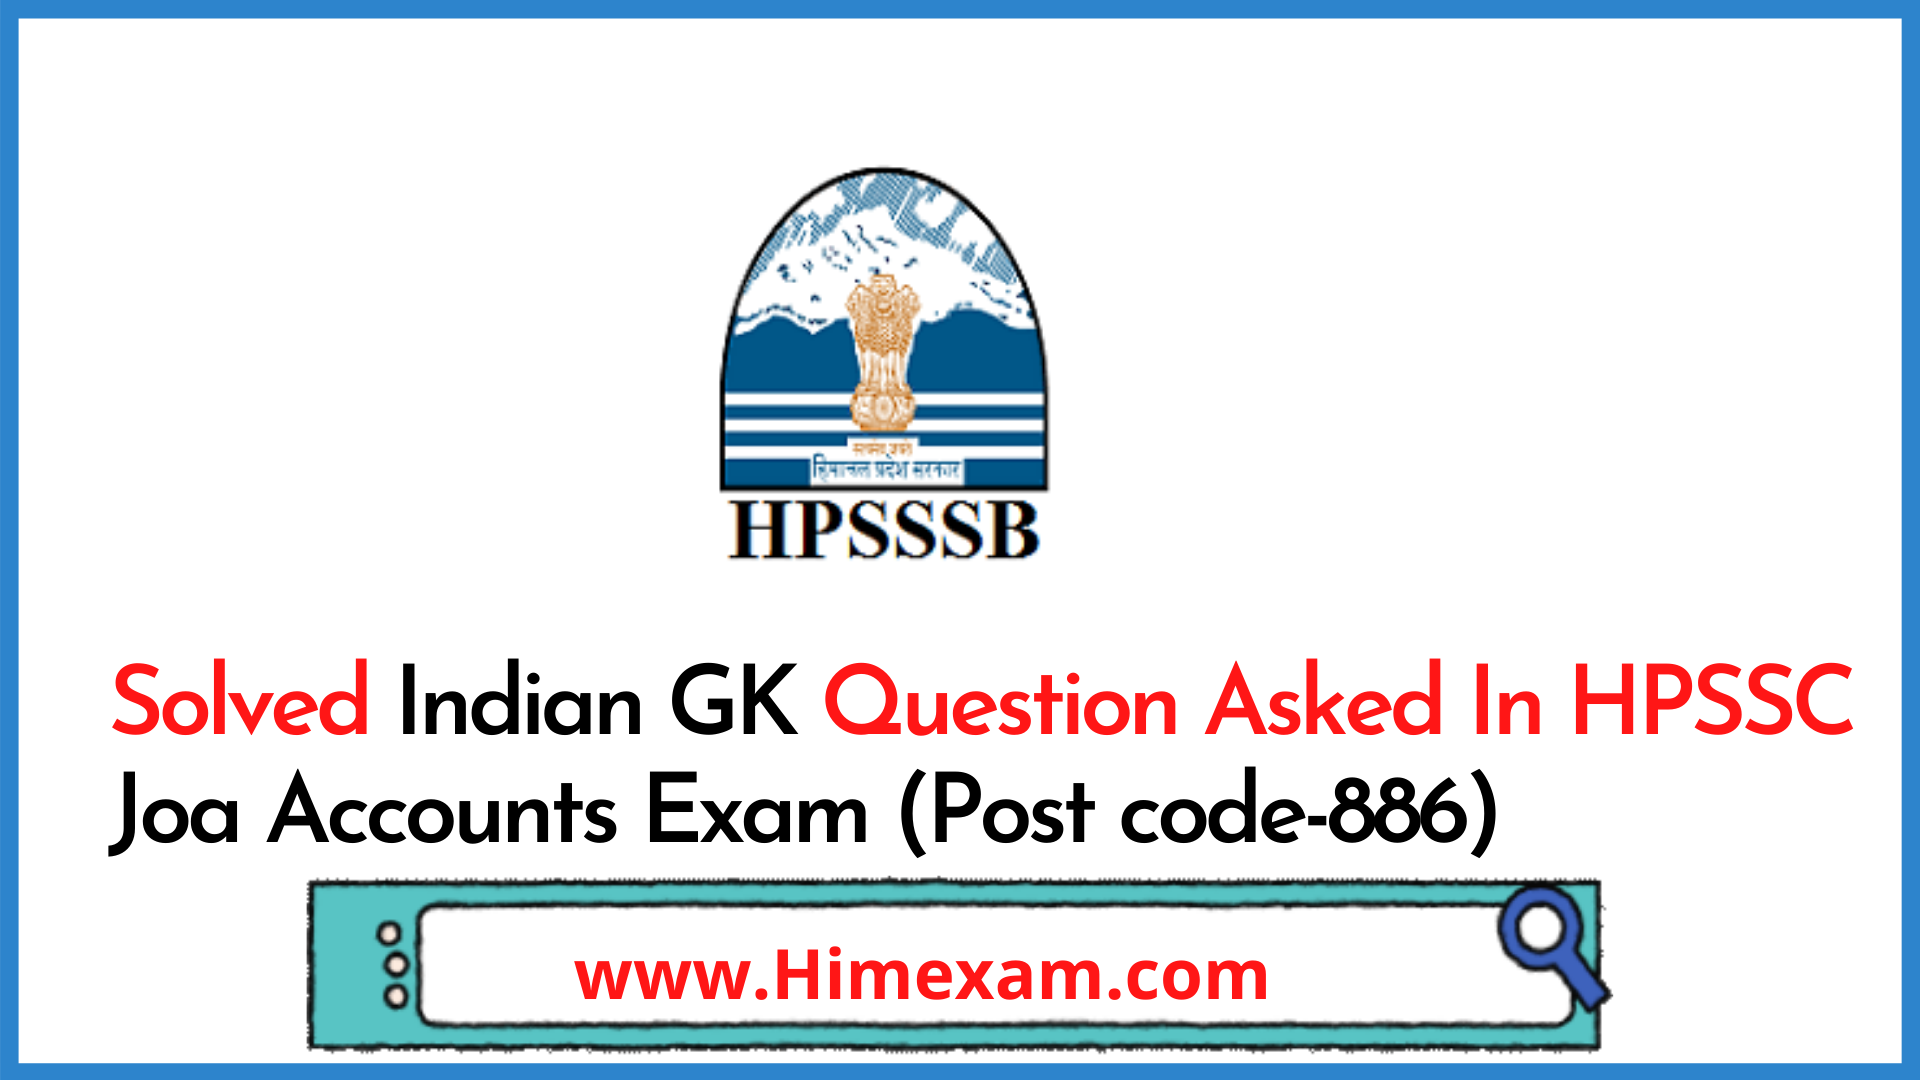 Solved Indian GK Question Asked In HPSSC Joa Accounts Exam (Post code-886)